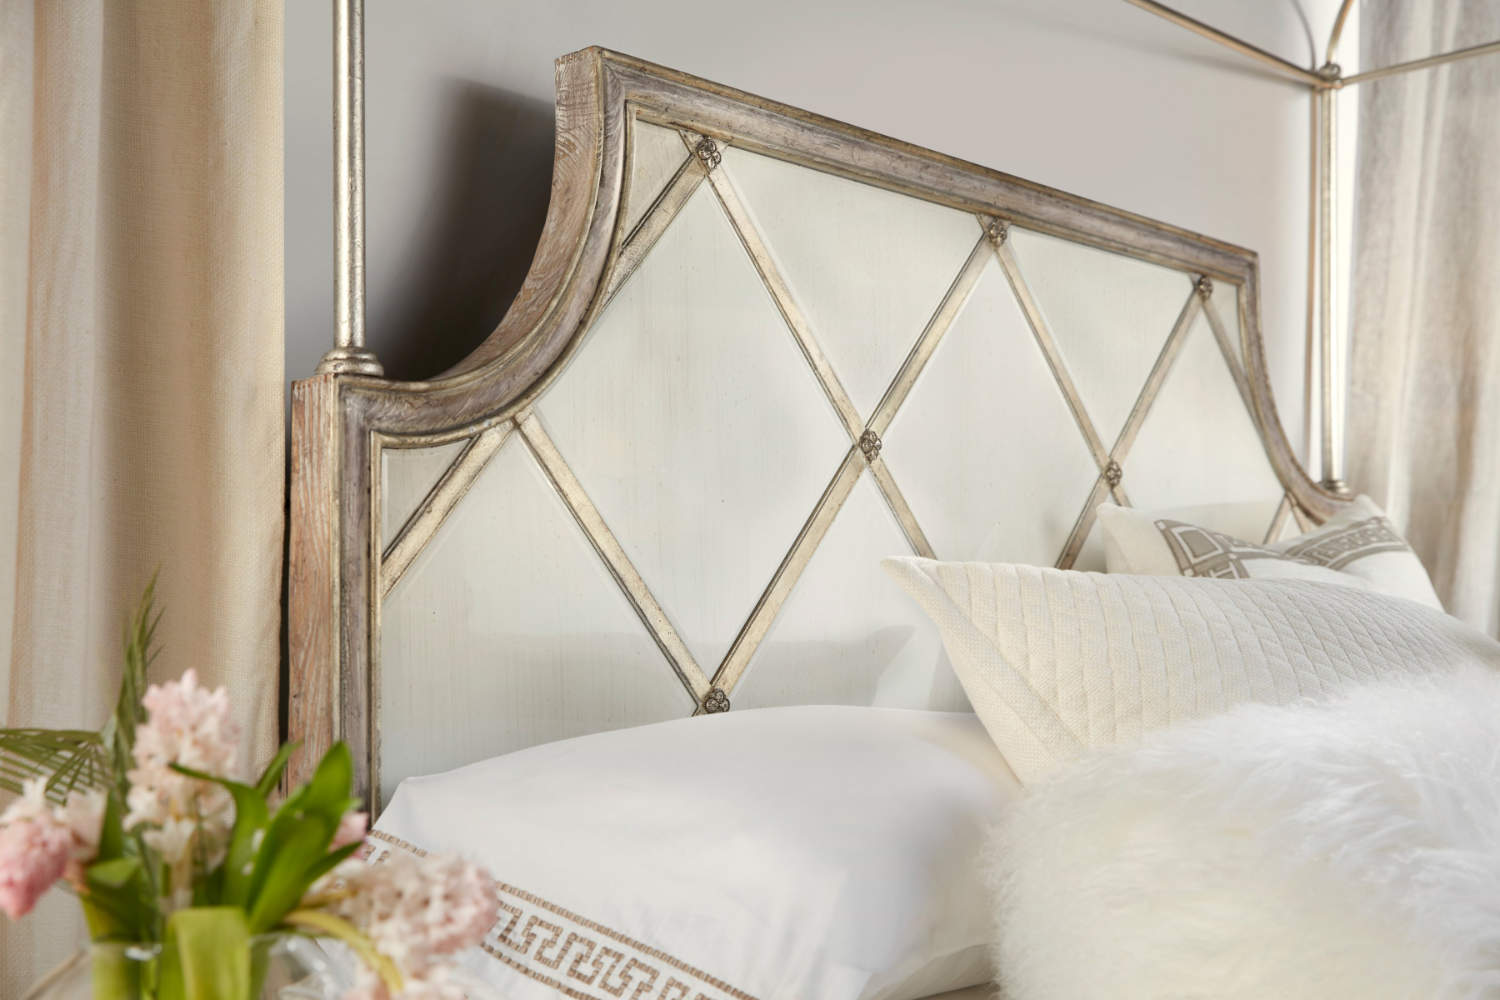 Hooker Furniture Sanctuary Collection Diamont Canopy Panel Bed Detail.jpg